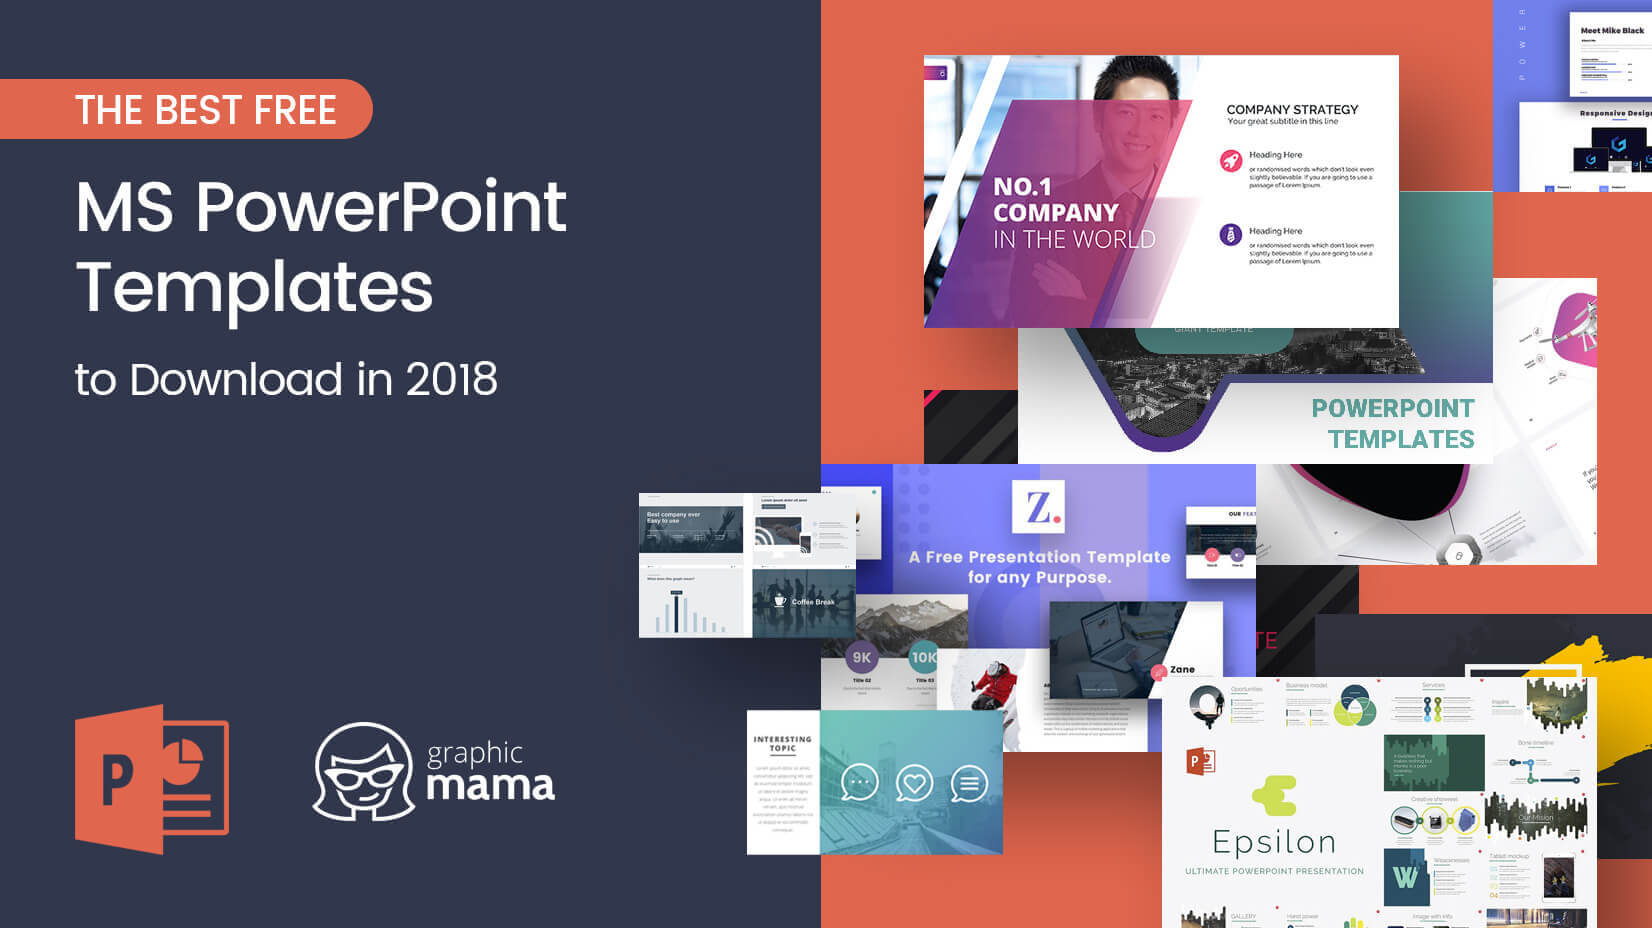 The Best Free Powerpoint Templates To Download In 2018 Throughout How To Design A Powerpoint Template